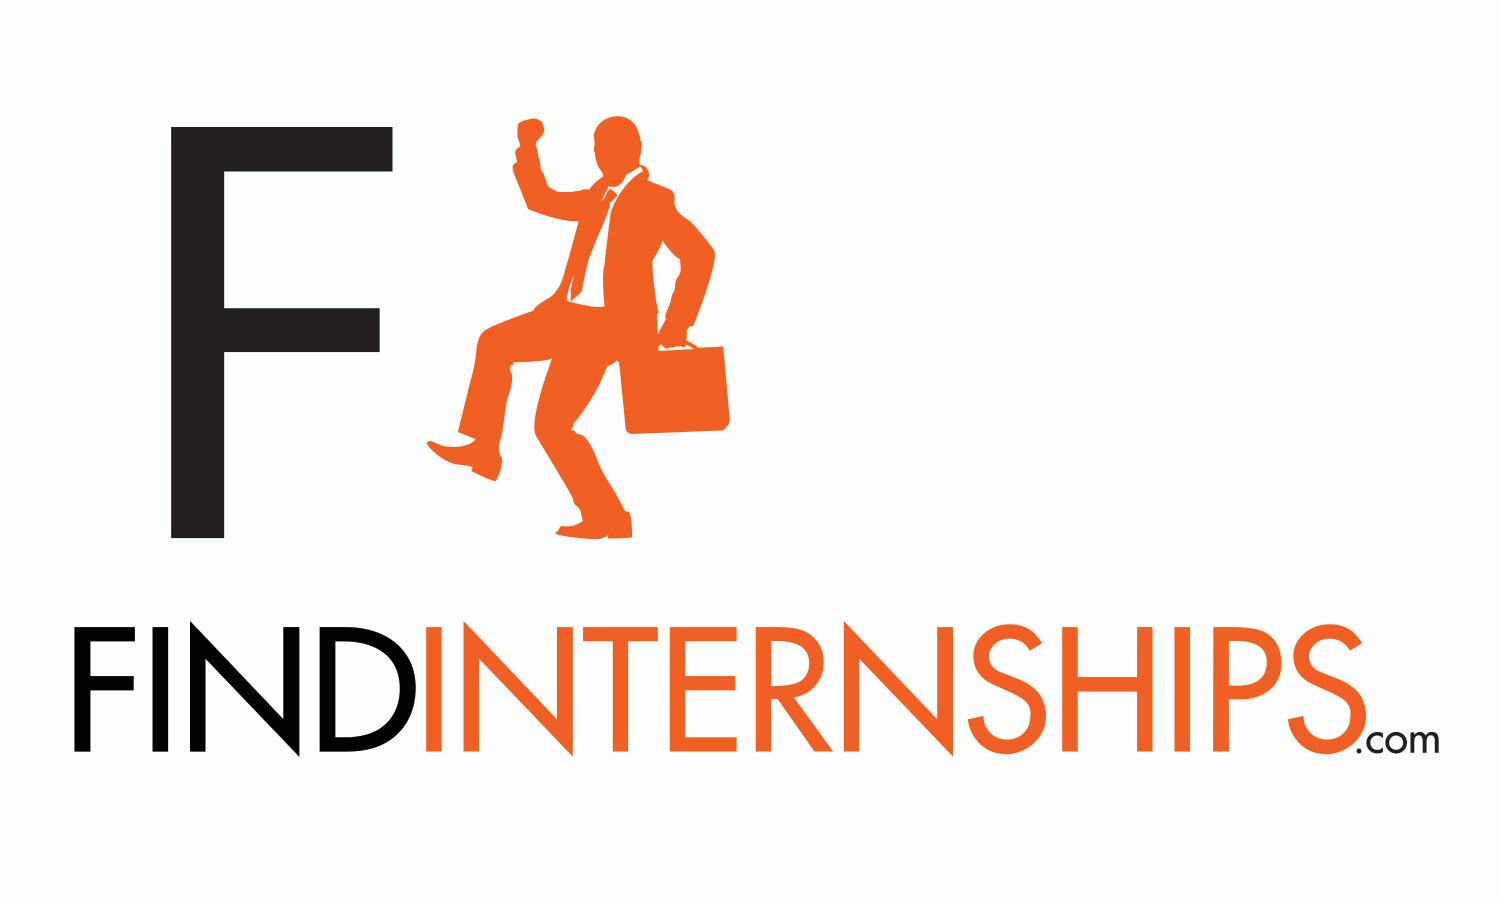 Click Here To Apply at FindInternships.com